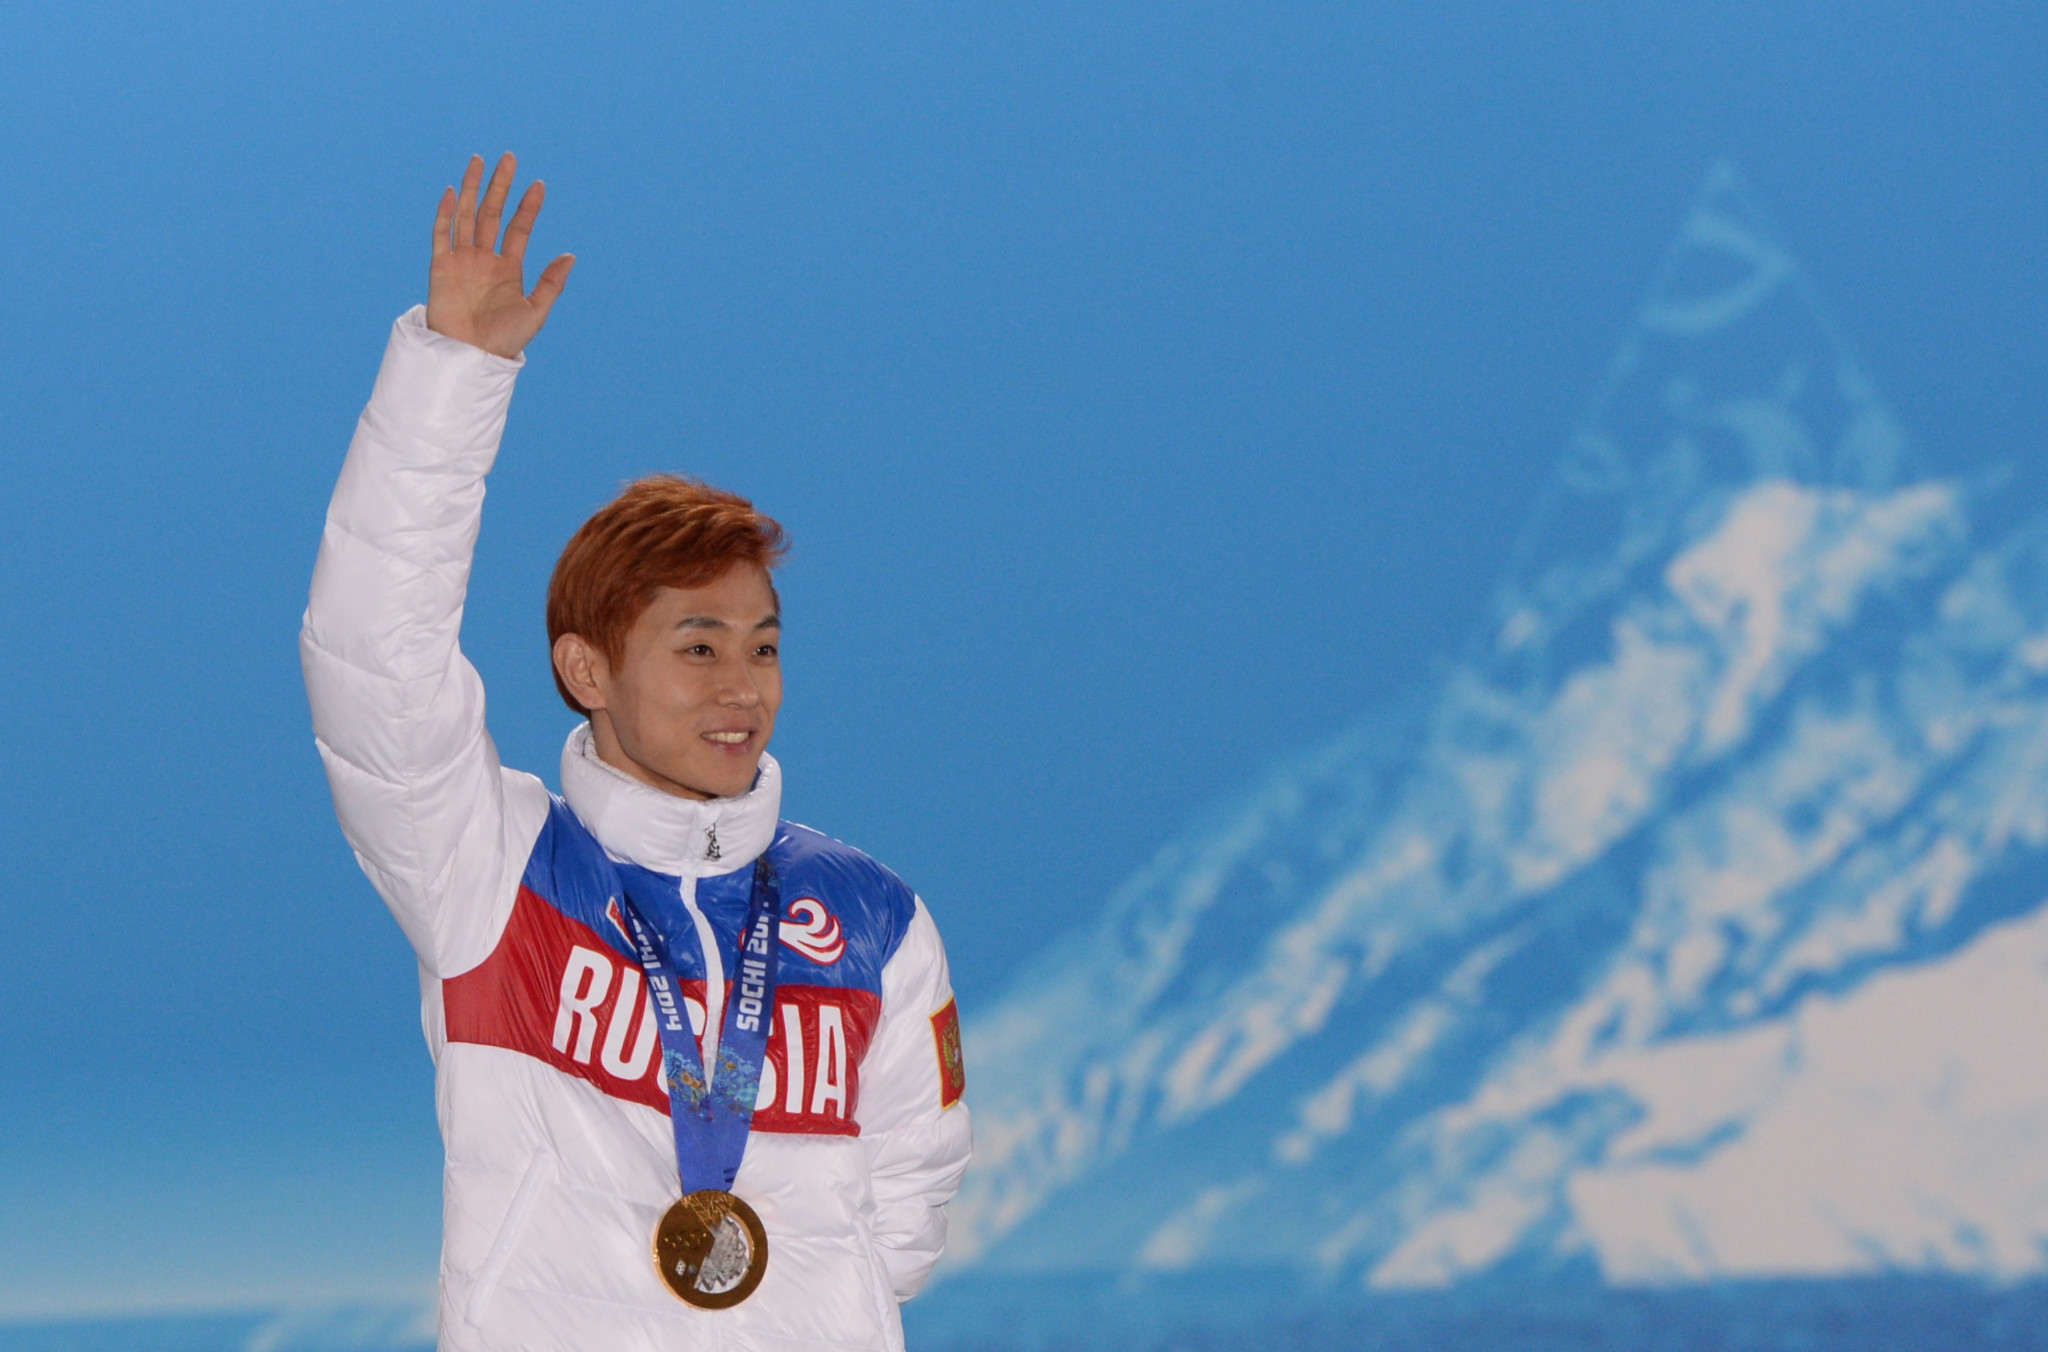 Viktor Ahn won three gold medals and a bronze for Russia at the 2014 Winter Olympics in Sochi ©Getty Images